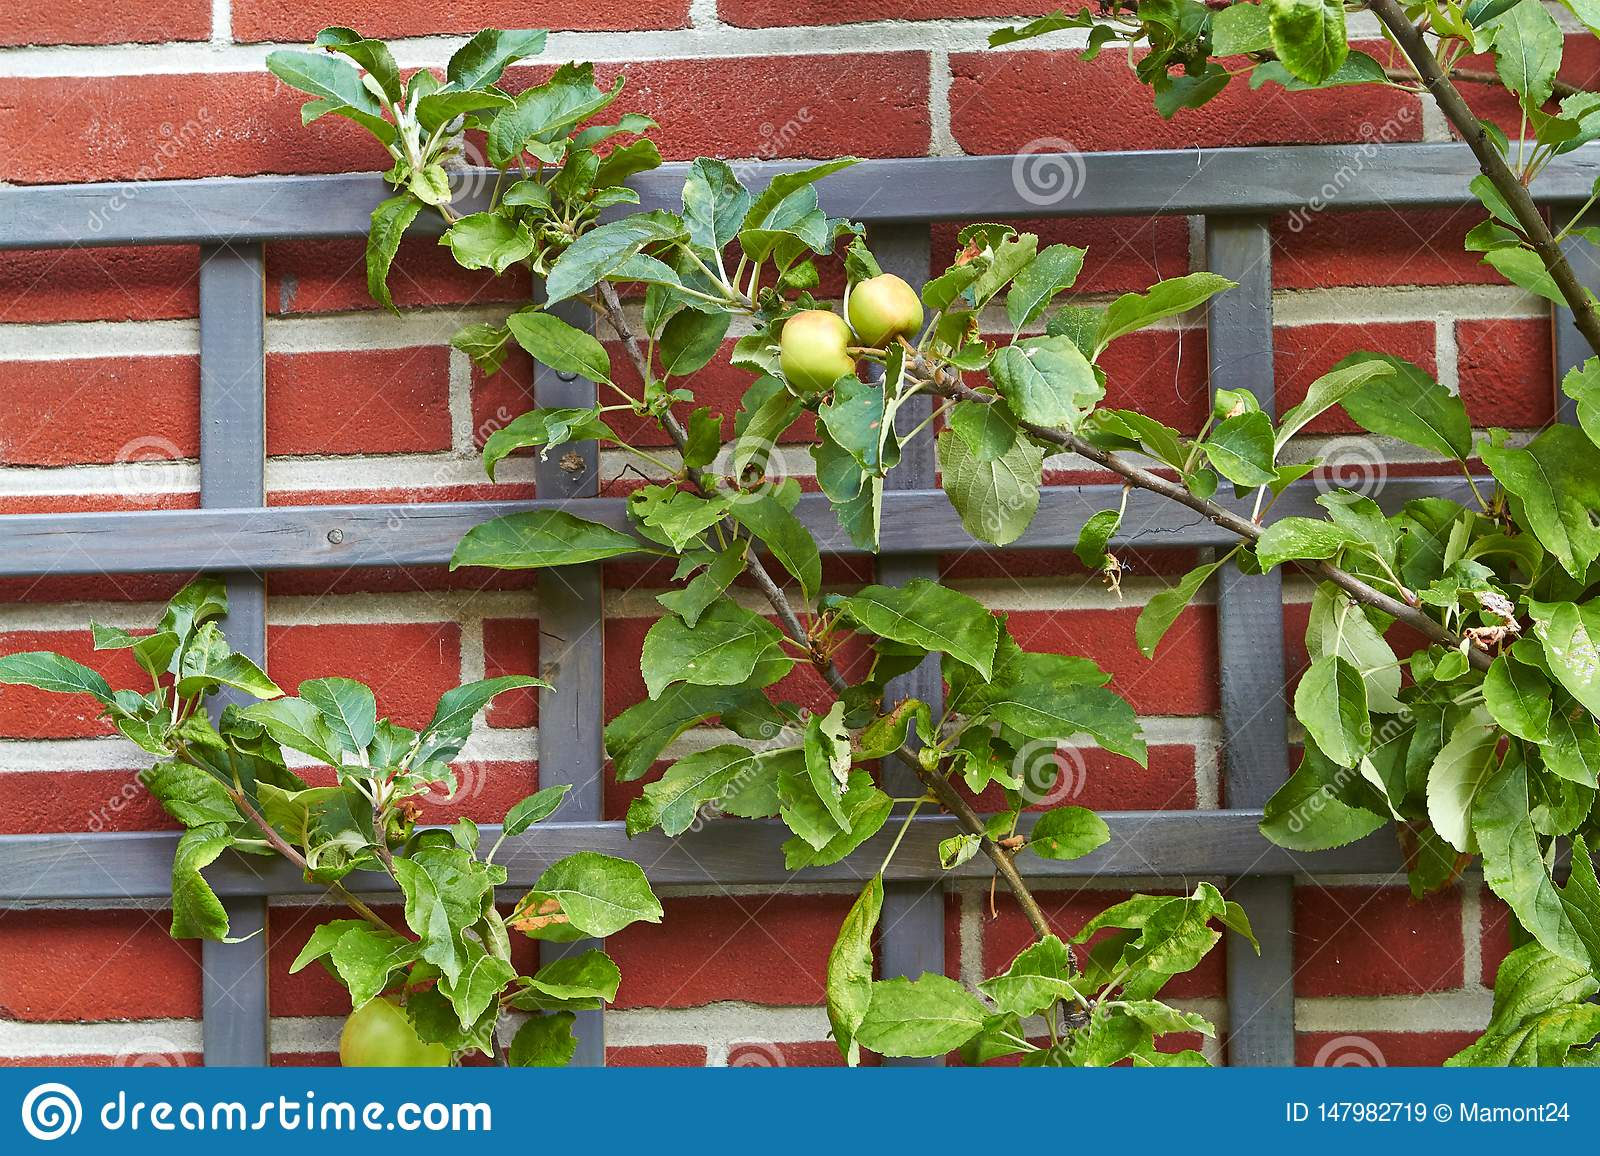 Branch with apples on a brick wall